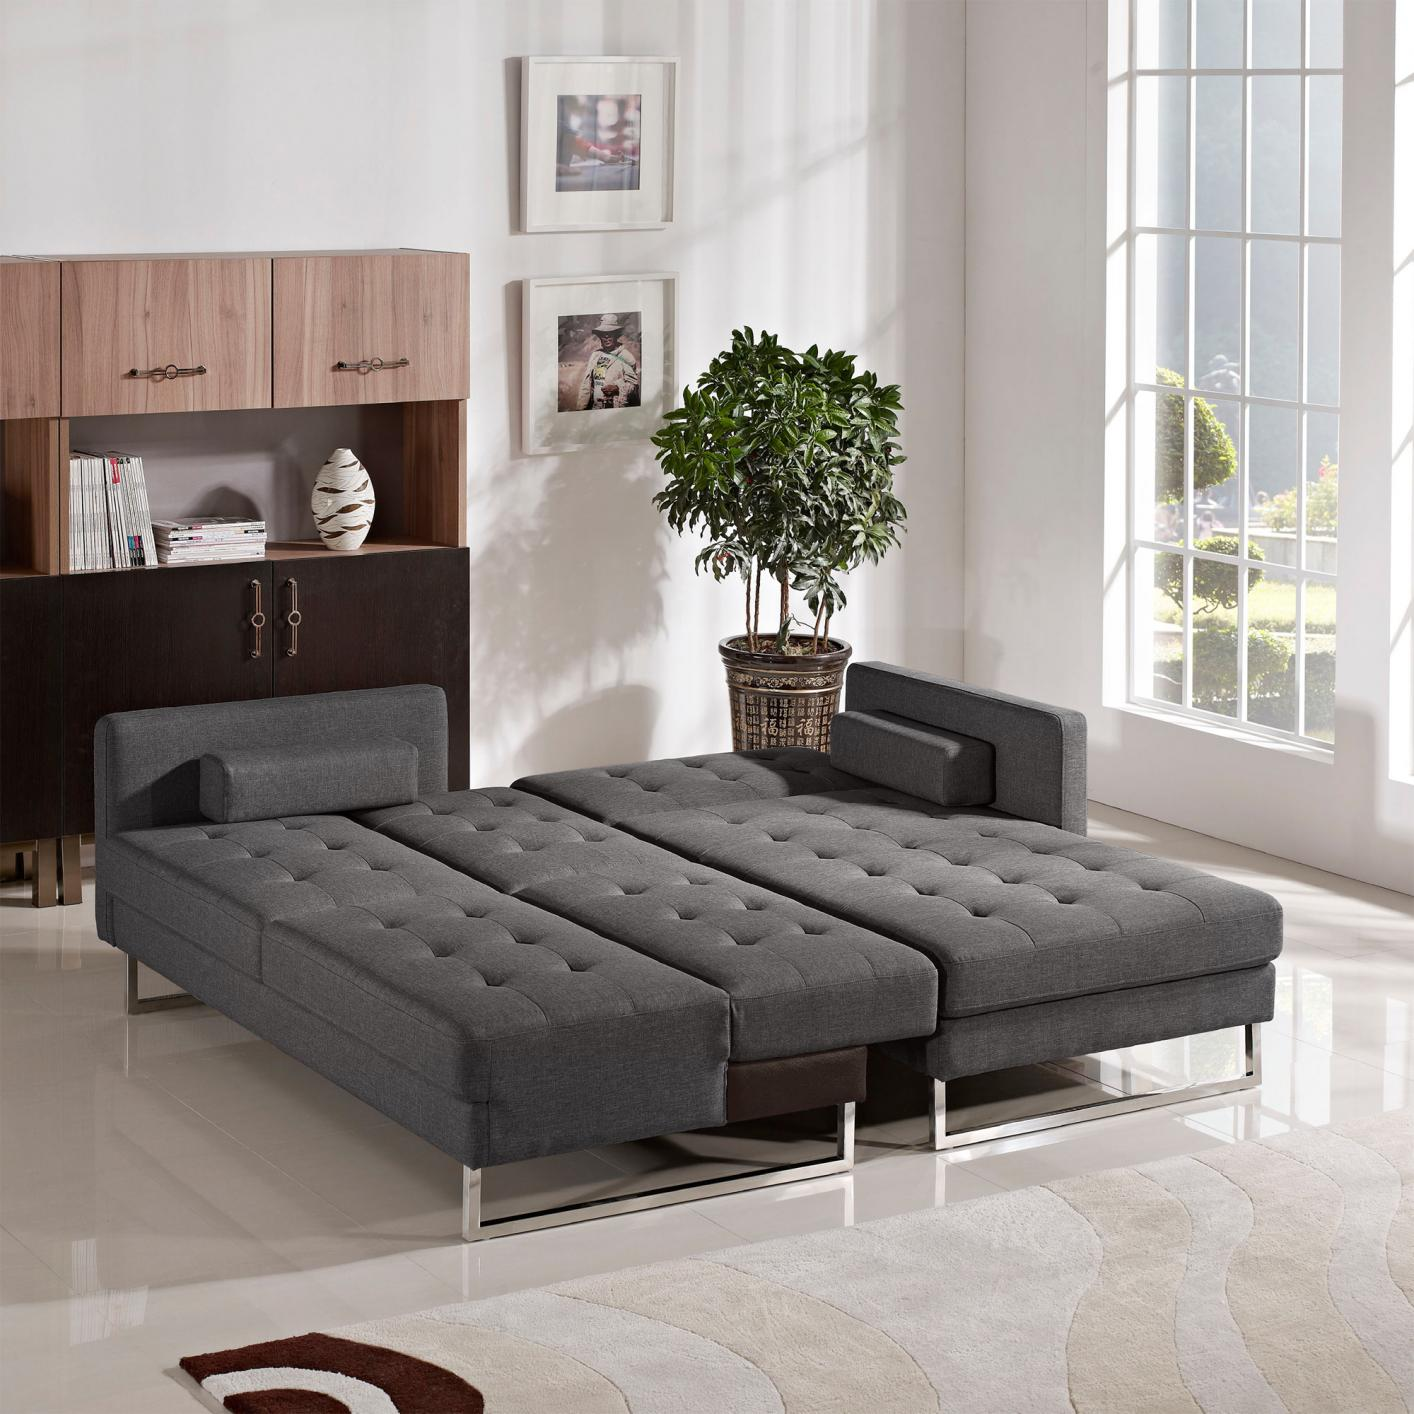 ... opus grey fabric sectional sofa bed ... zglhsmf